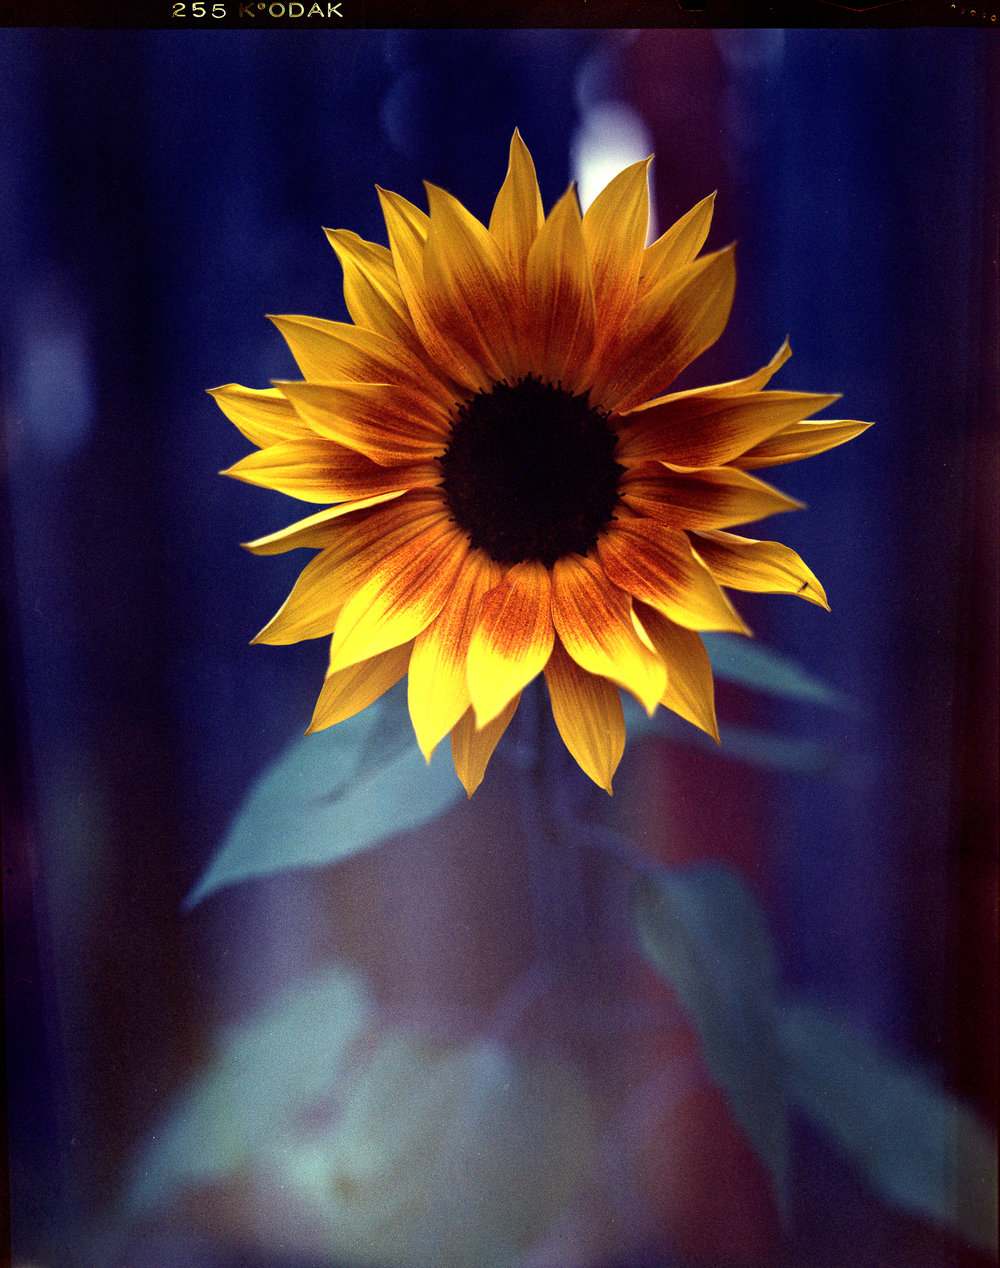 Last Flower of the Year | Toyo 4x5 | Schneider 150mm, Vericolor III | Sam Margulis